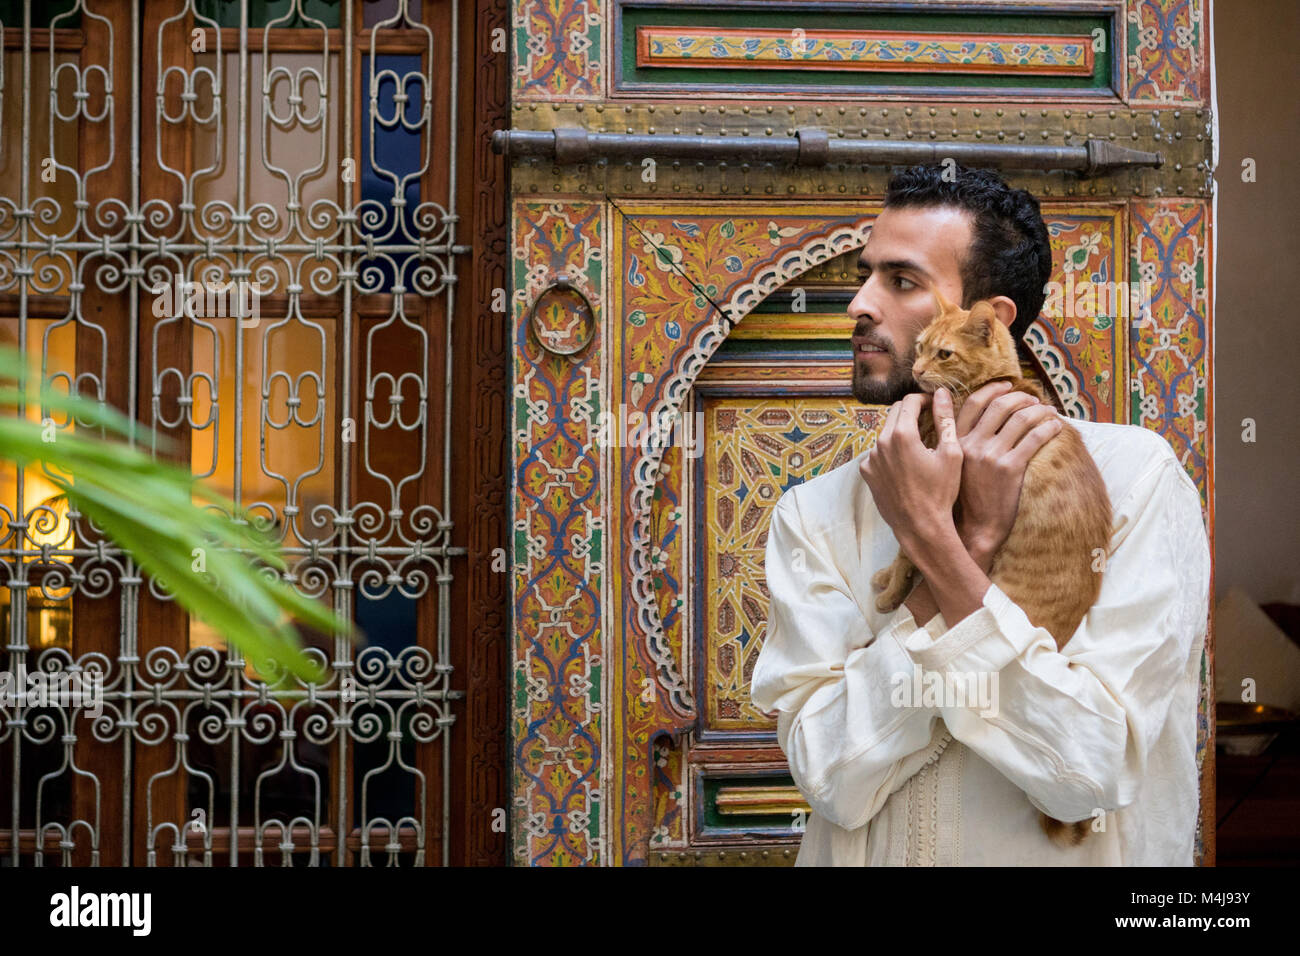 Young muslim man in traditional clothing holding a yellow cat in traditional Moroccan ambient in front of a decorated - Stock Image